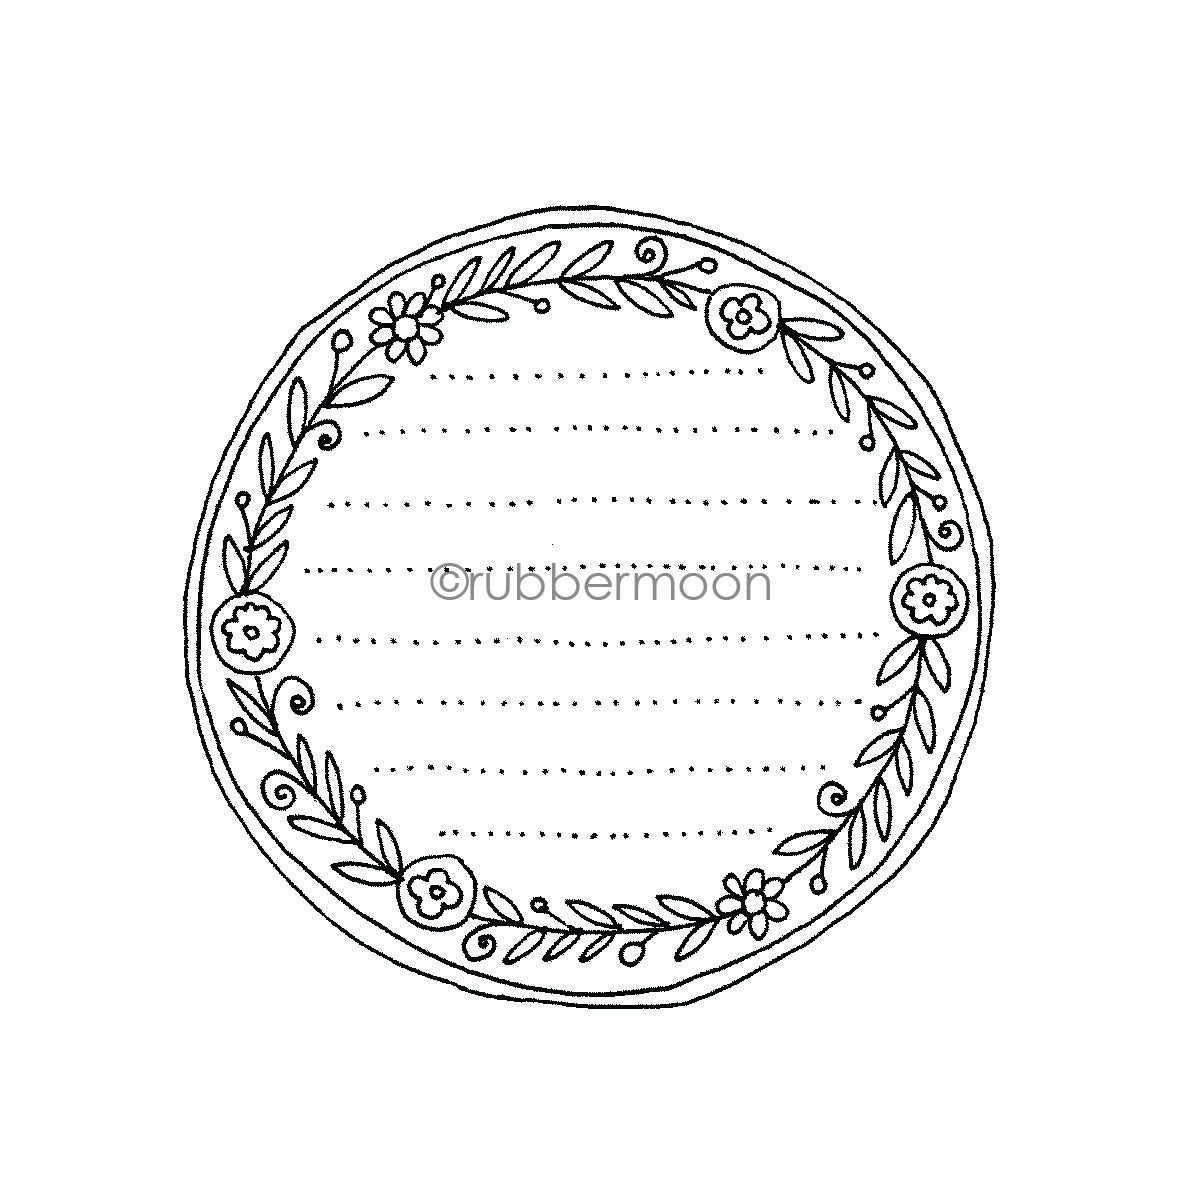 Jone Hallmark | JH7647I - Journal Spot - Rubber Art Stamp